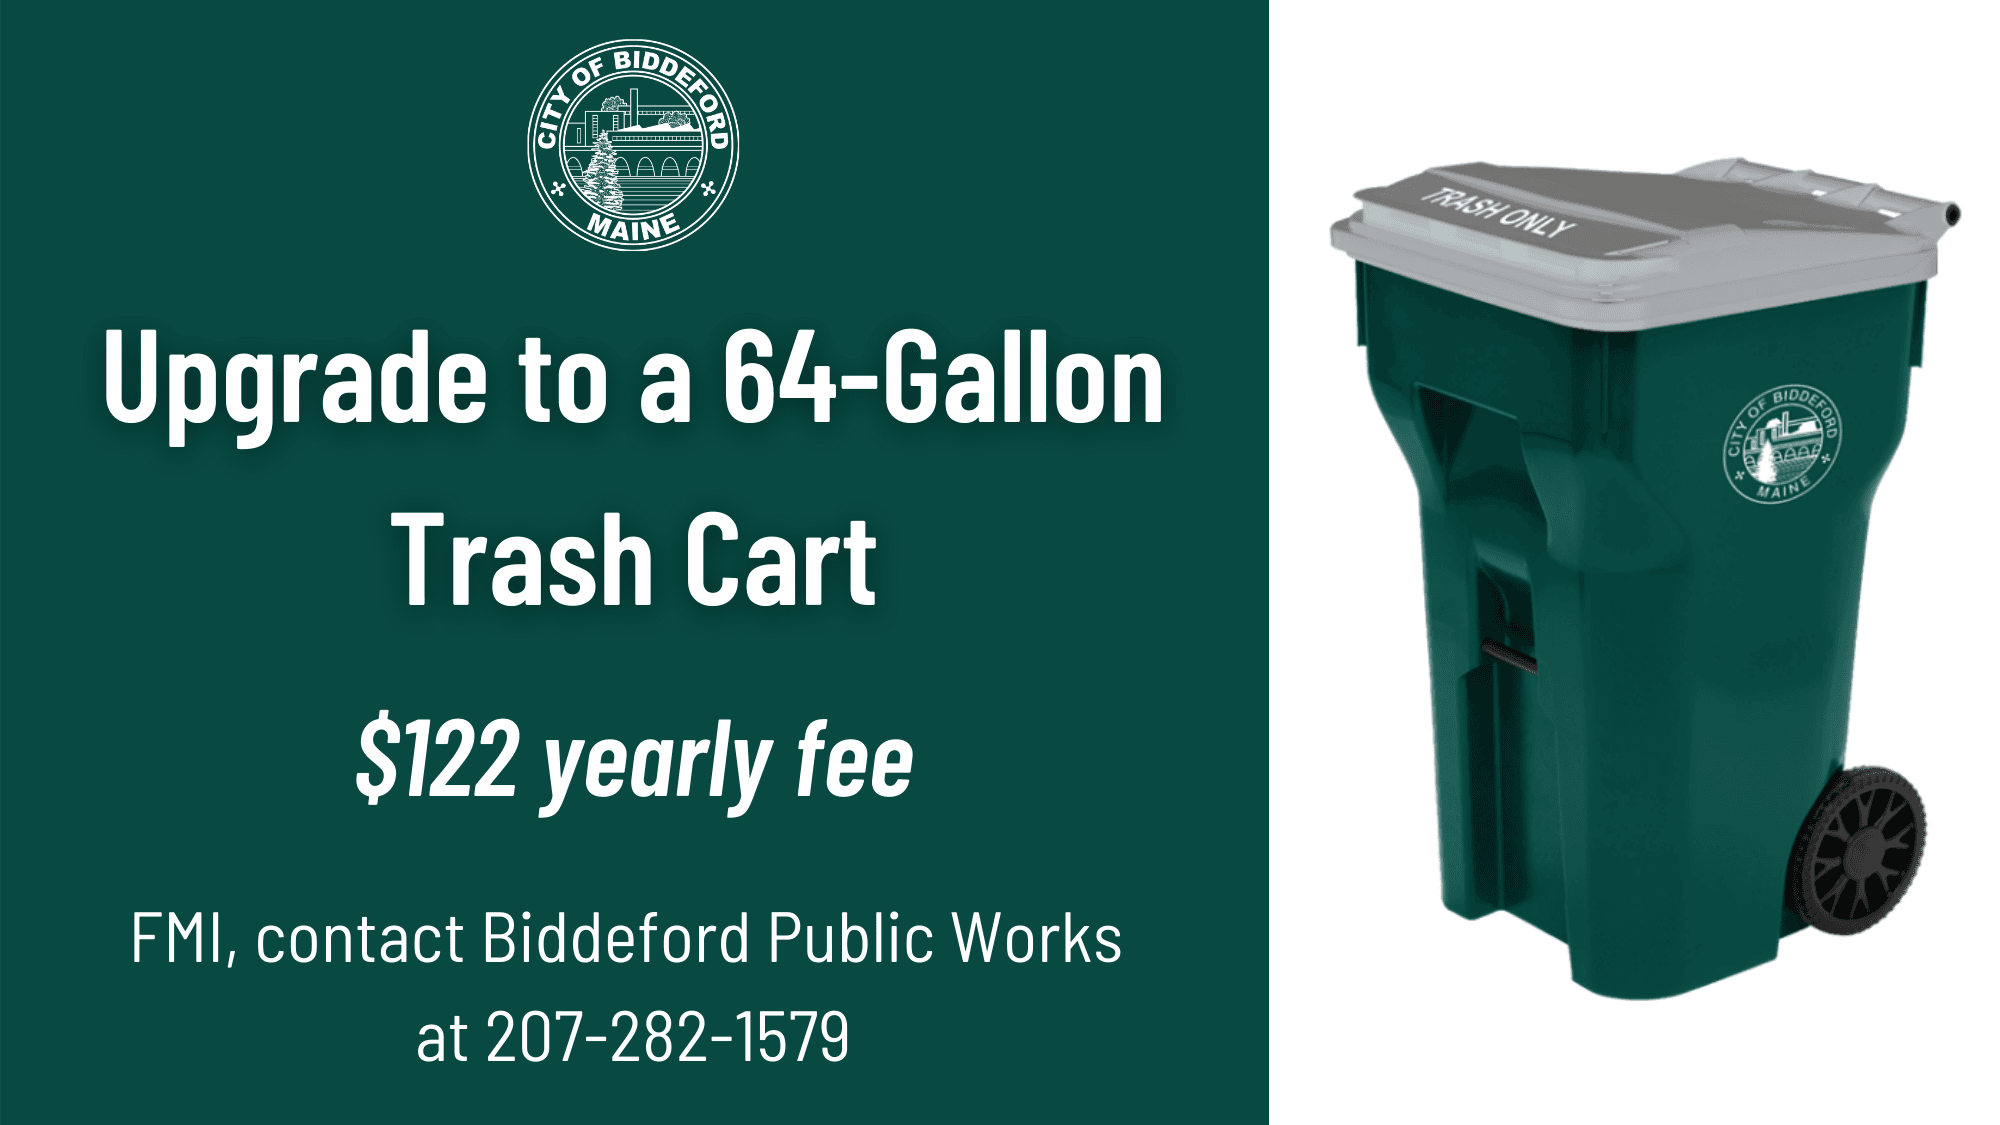 Upgrade to a 64-Gallon Trash Cart